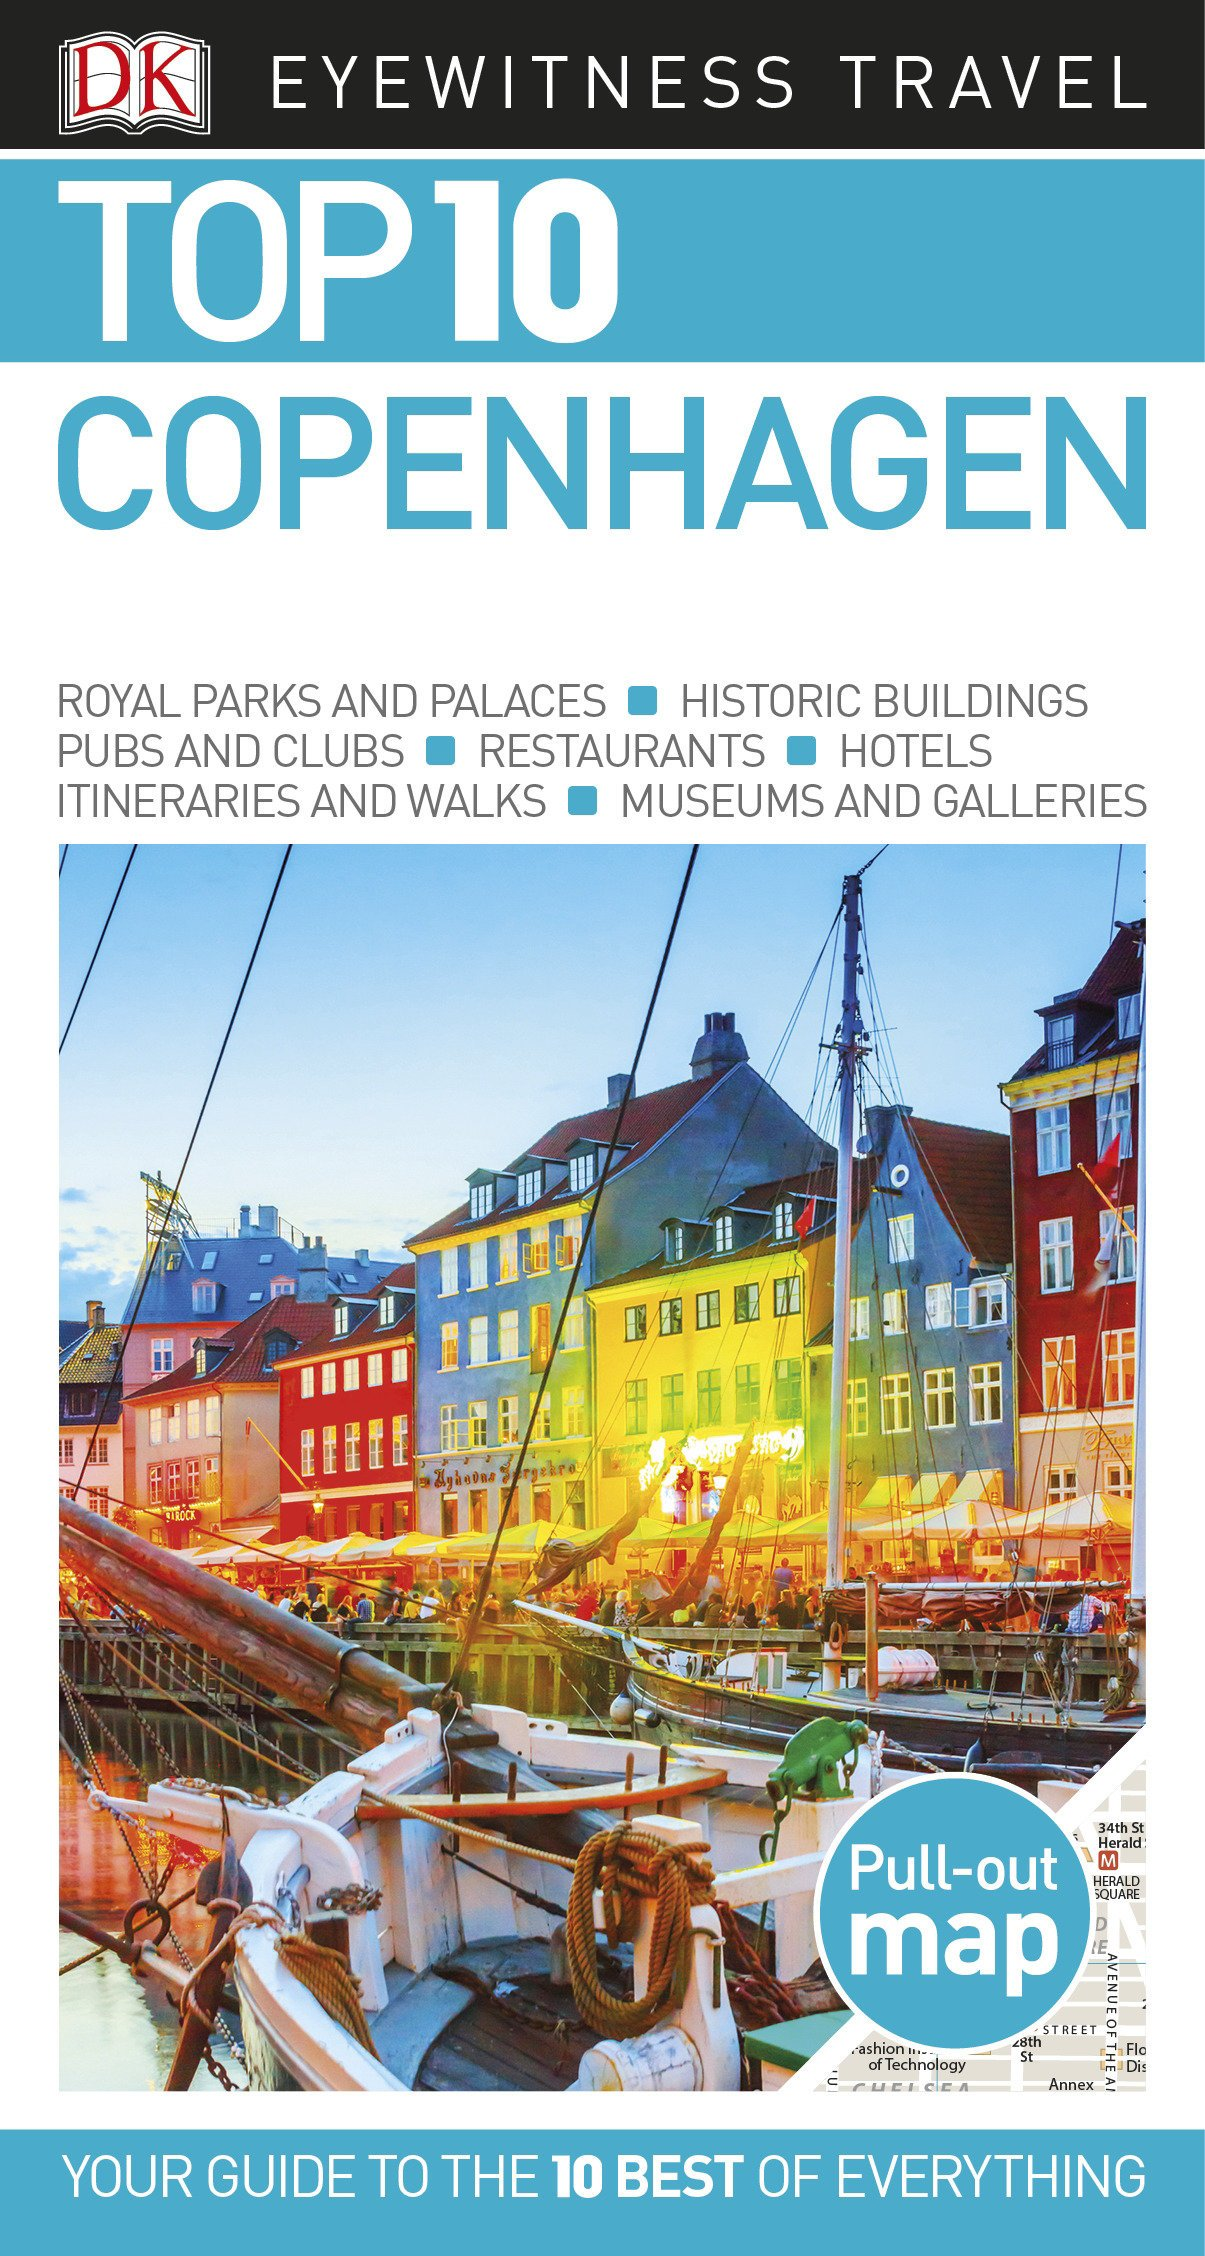 Top 10 Copenhagen (Eyewitness Top 10 Travel Guide) by DK Eyewitness Travel